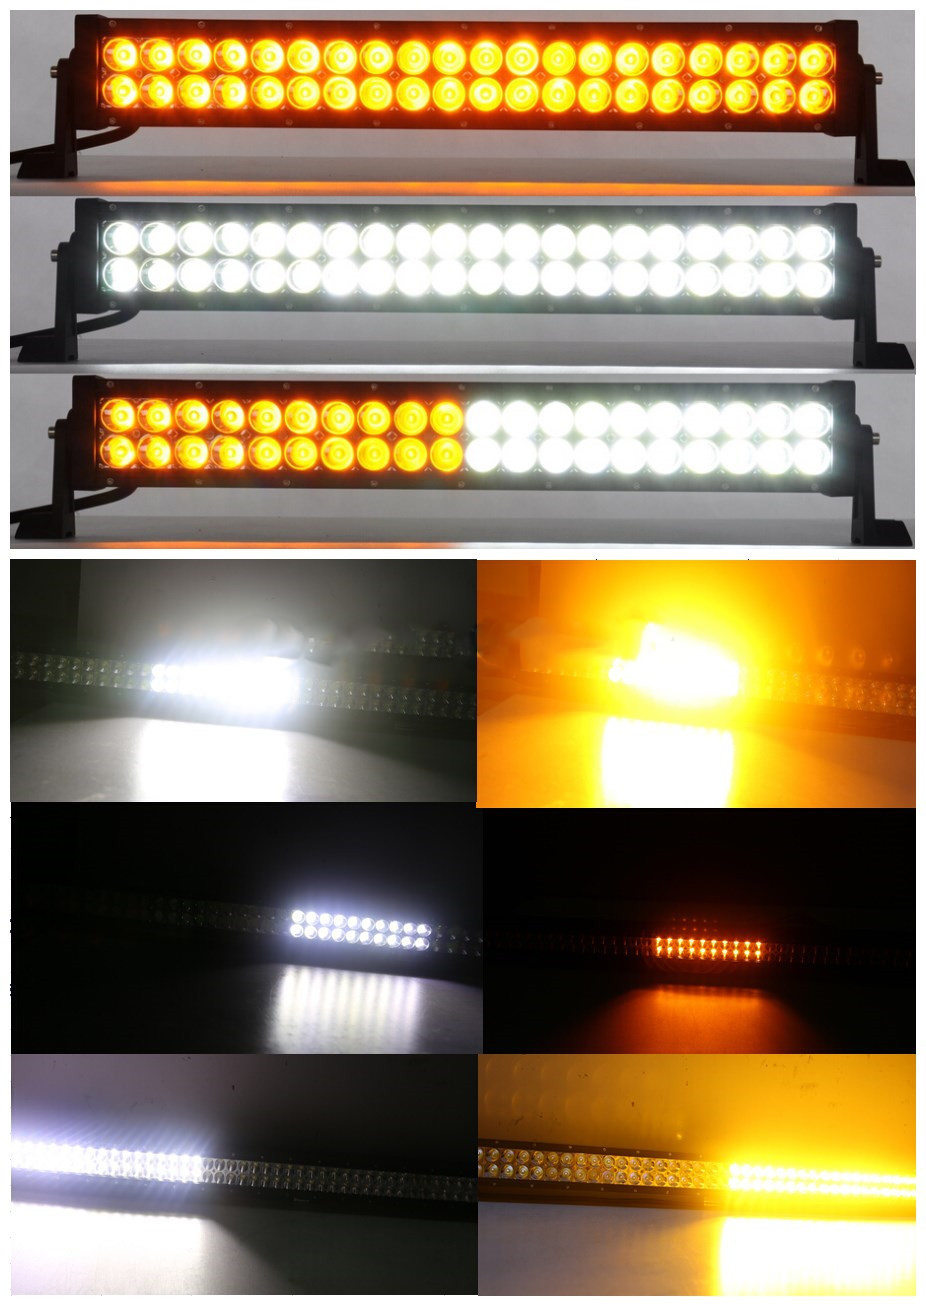 21 5 Inch 120w Blitz Led Light Bar White Amber With Remote Controller Product On